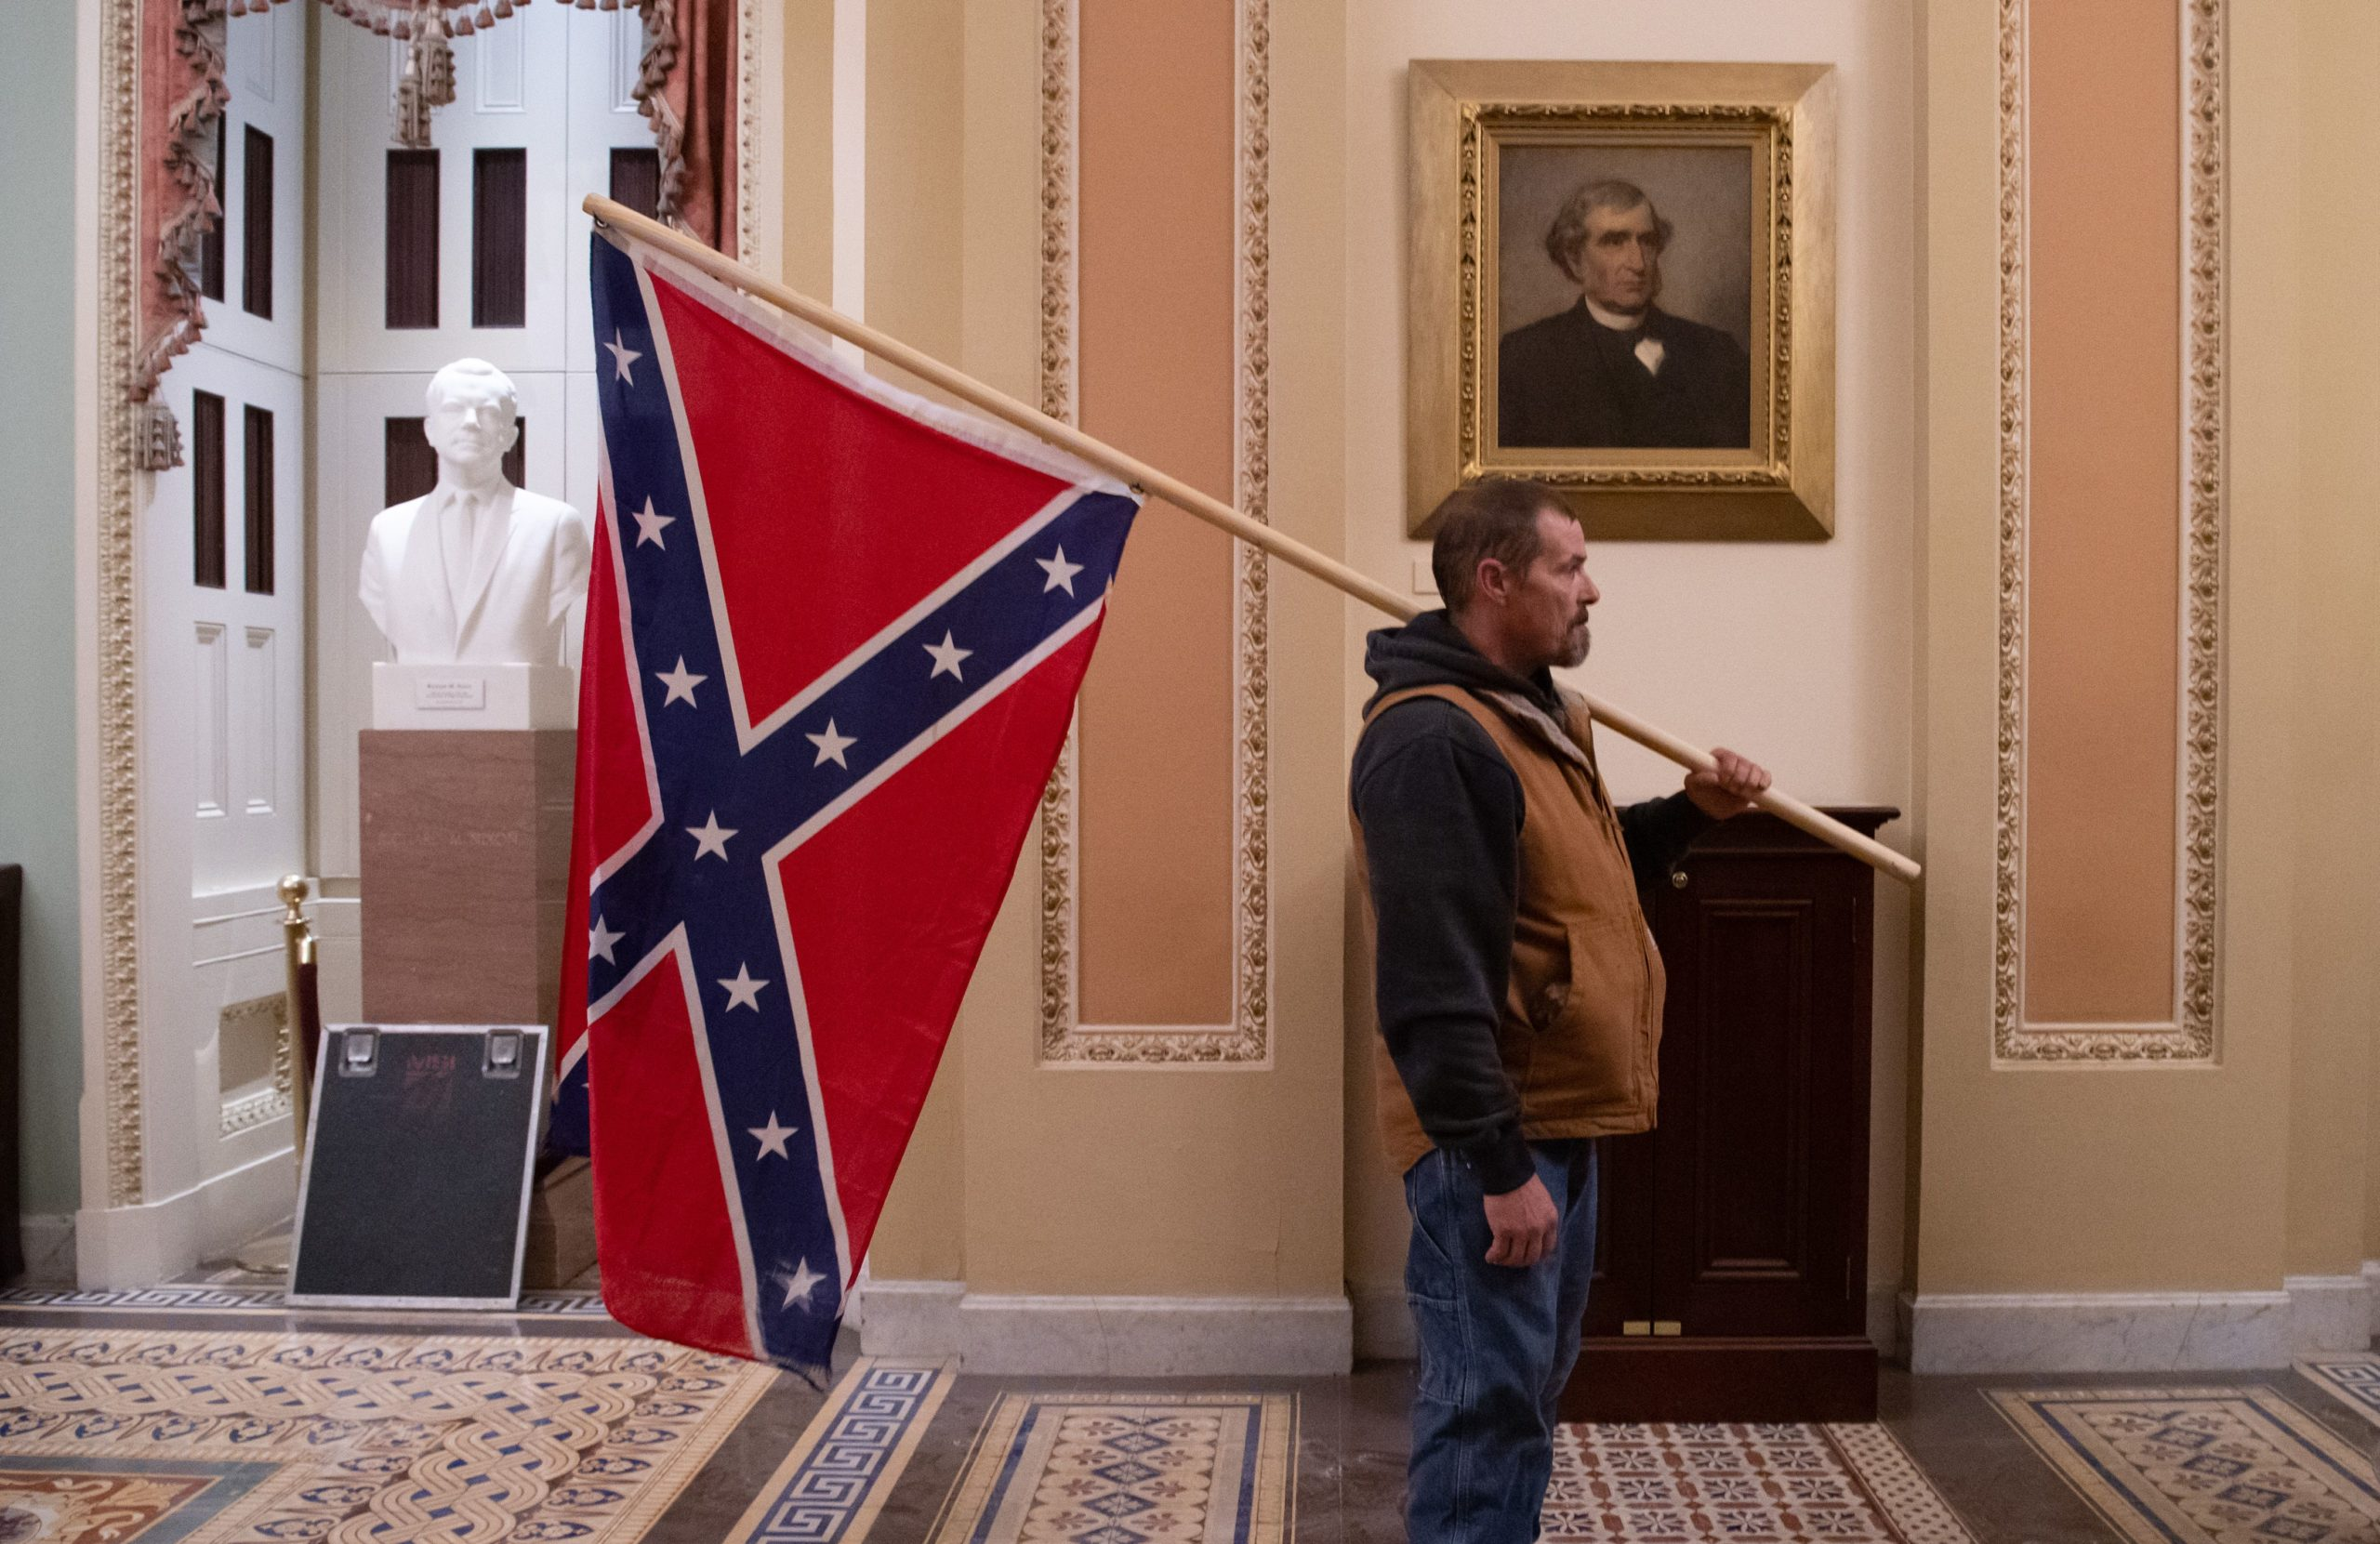 A supporter of US President Donald Trump holds a Confederate flag outside the Senate Chamber during a protest after breaching the US Capitol in Washington, DC, January 6, 2021. - The demonstrators breeched security and entered the Capitol as Congress debated the 2020 presidential election Electoral Vote Certification. (Photo by Saul Loeb/AFP via Getty Images)